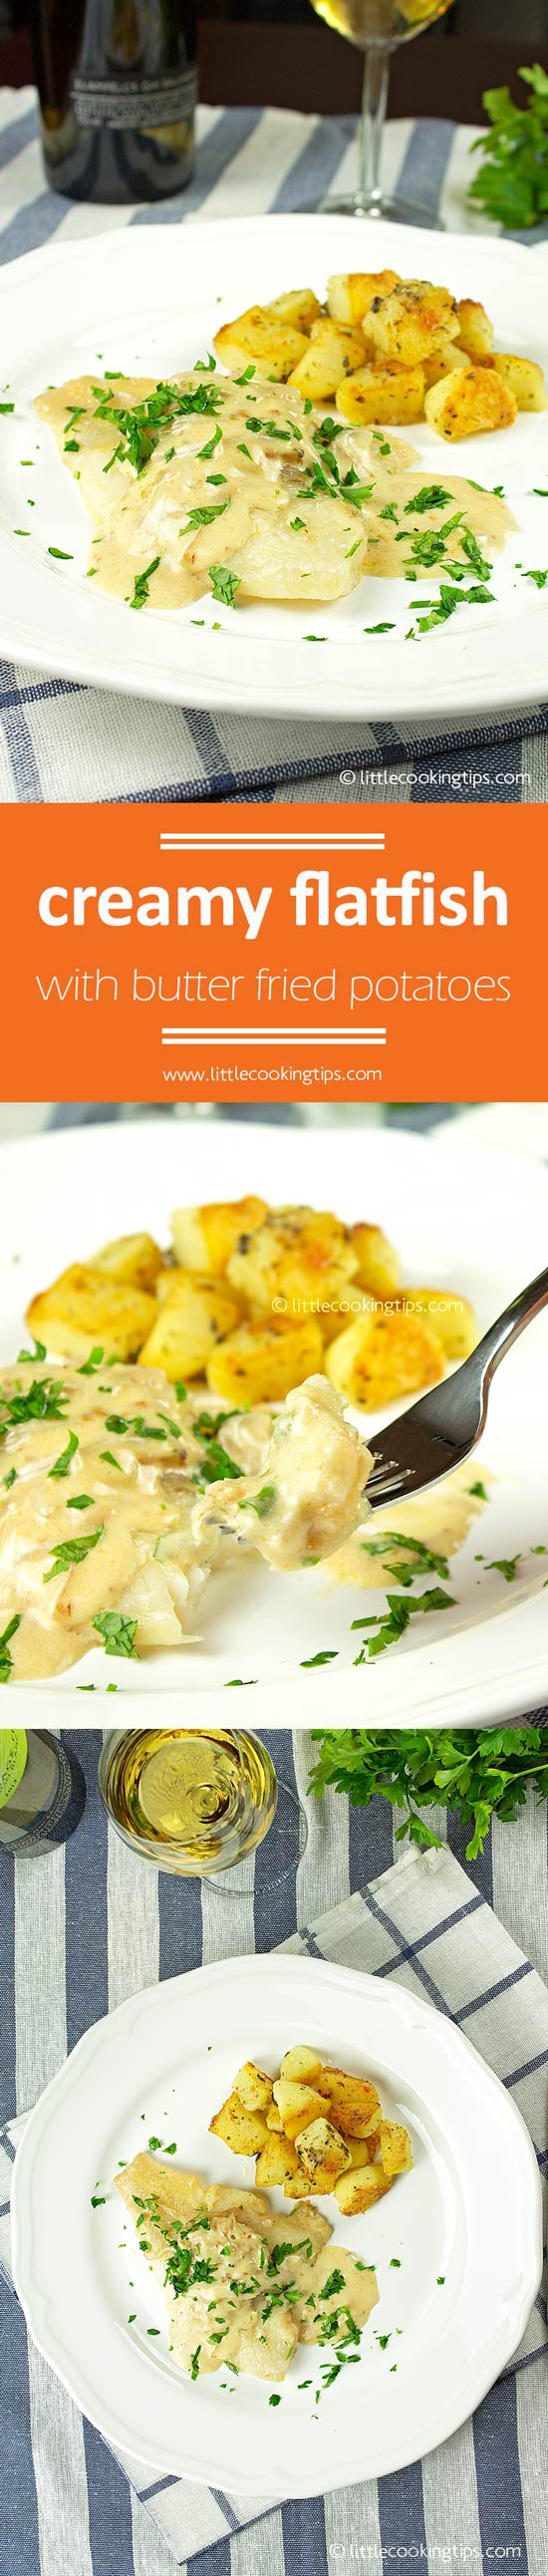 Creamy Flatfish With Butter Fried Potatoes